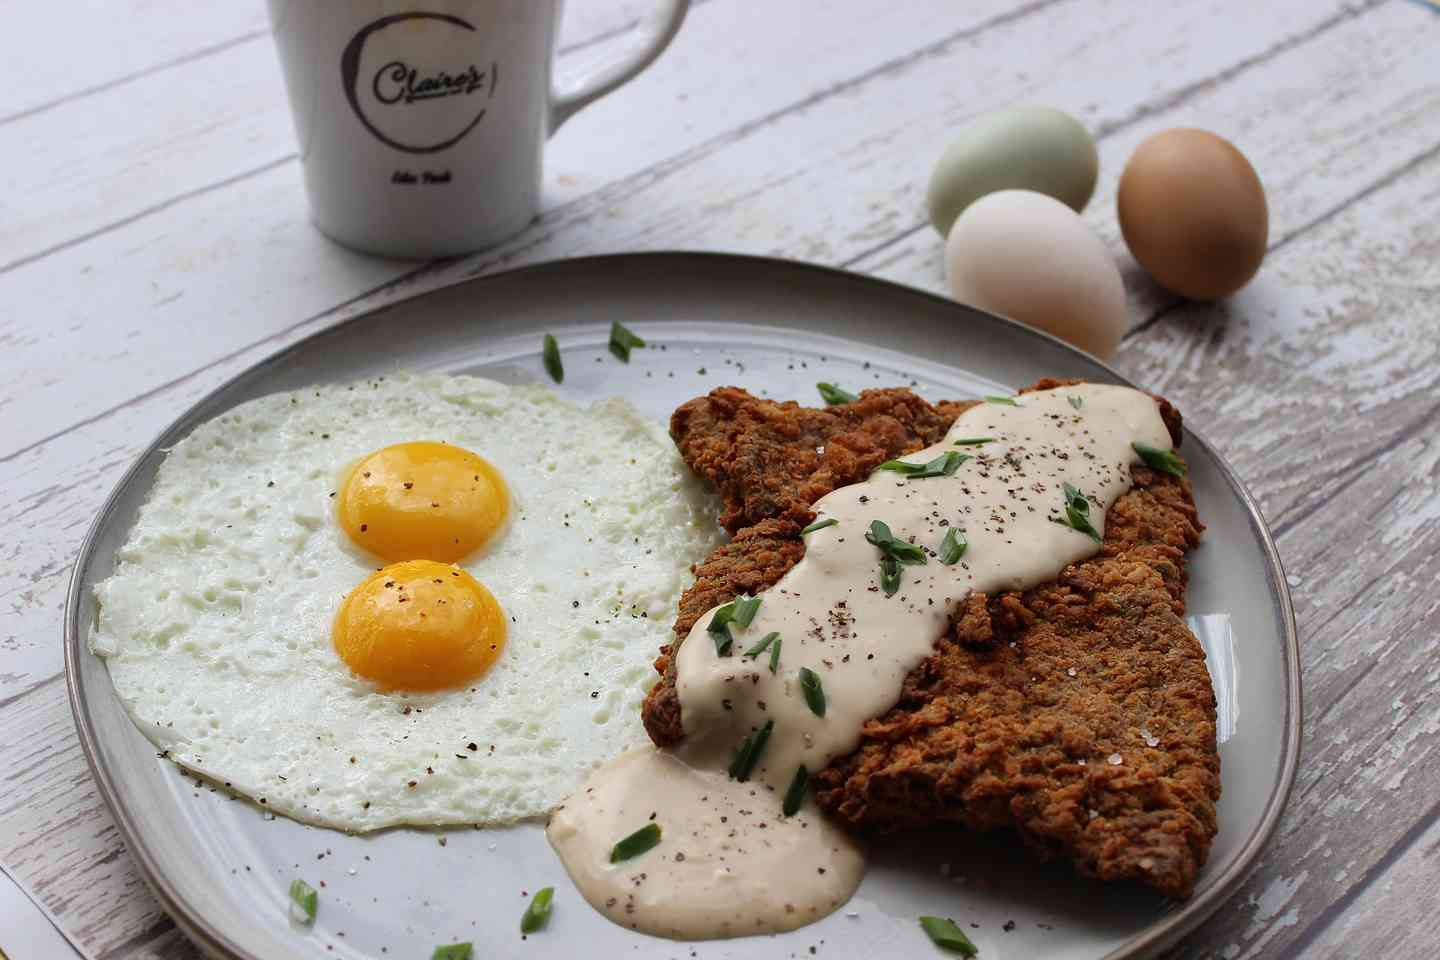 Country Fried Steak*